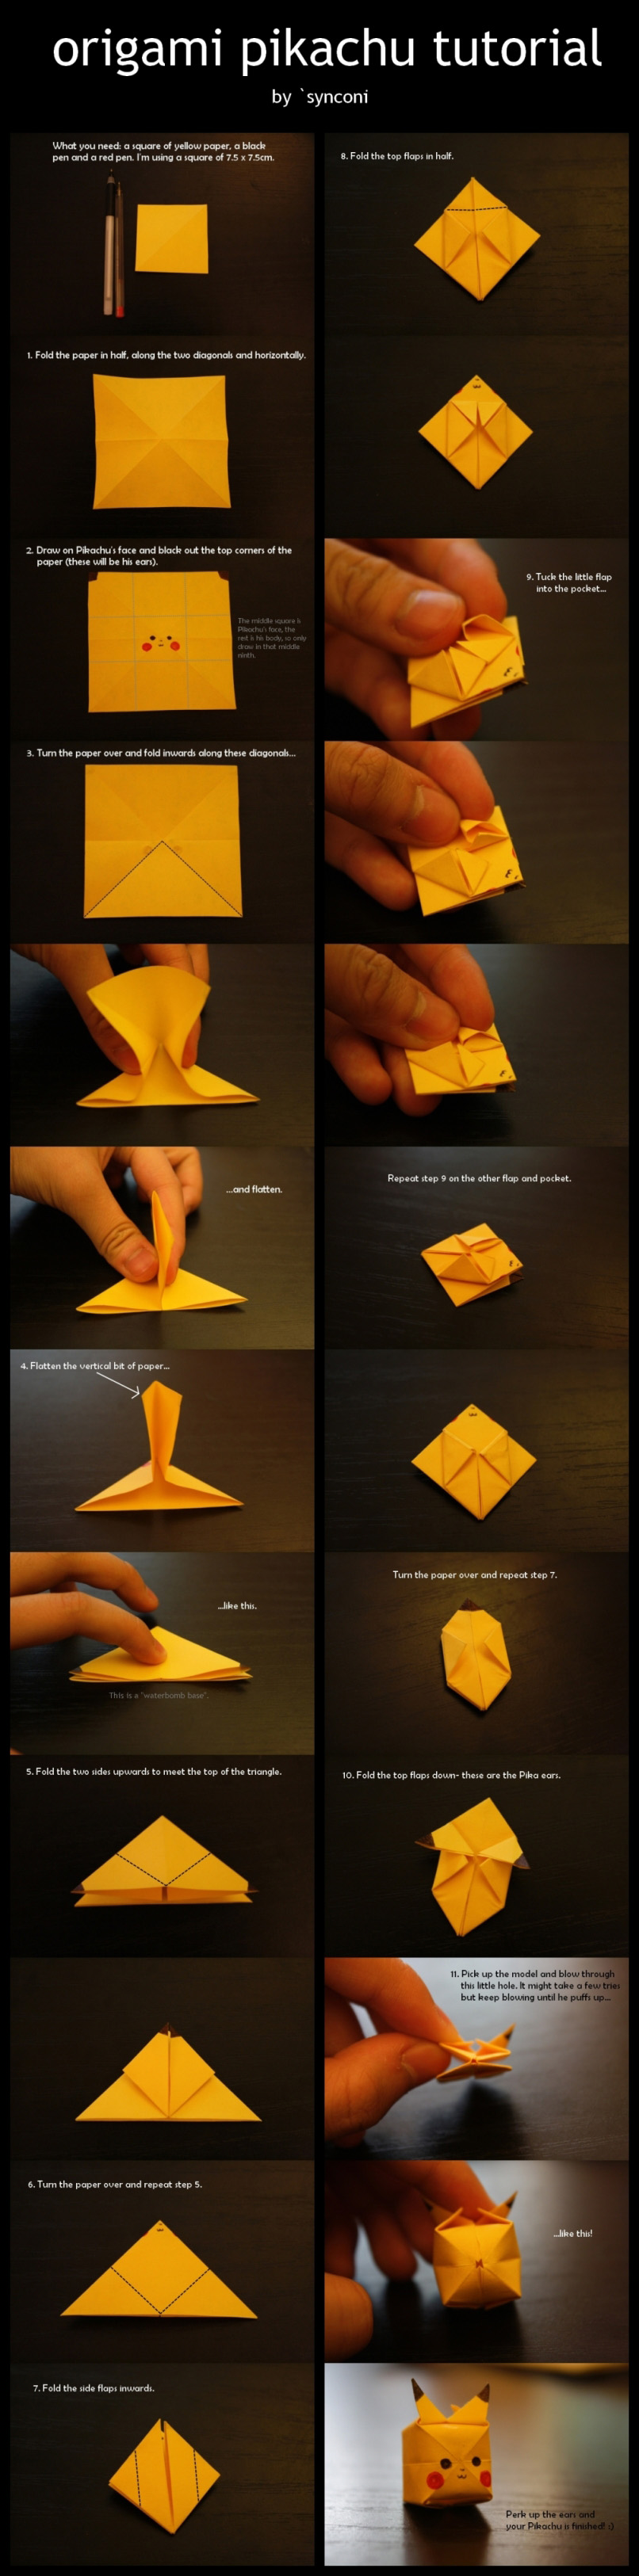 27 Marvelous Photo of Pikachu Origami 3d . Pikachu Origami 3d 3d ... | 3251x806